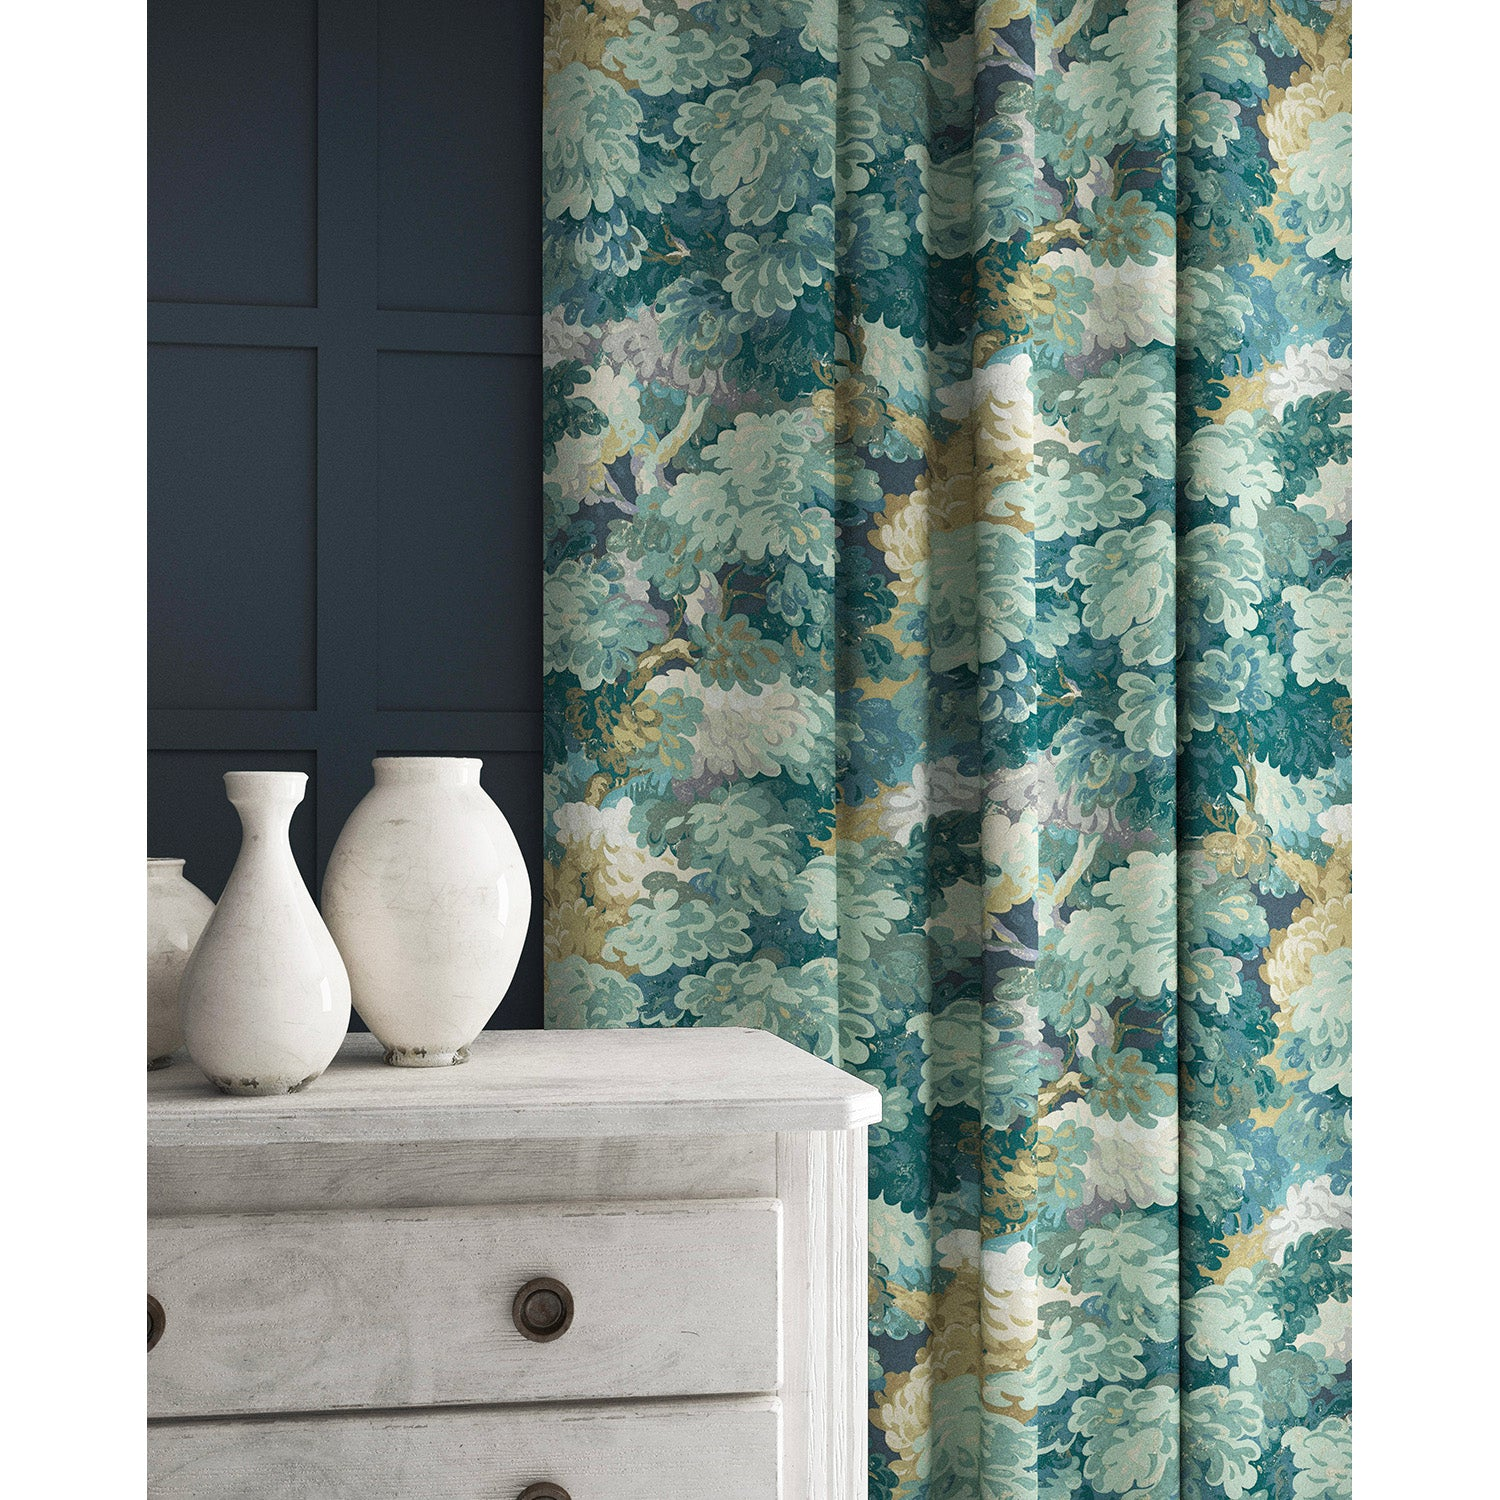 Curtains in a teal coloured velvet fabric with stain resistant finish and tree design